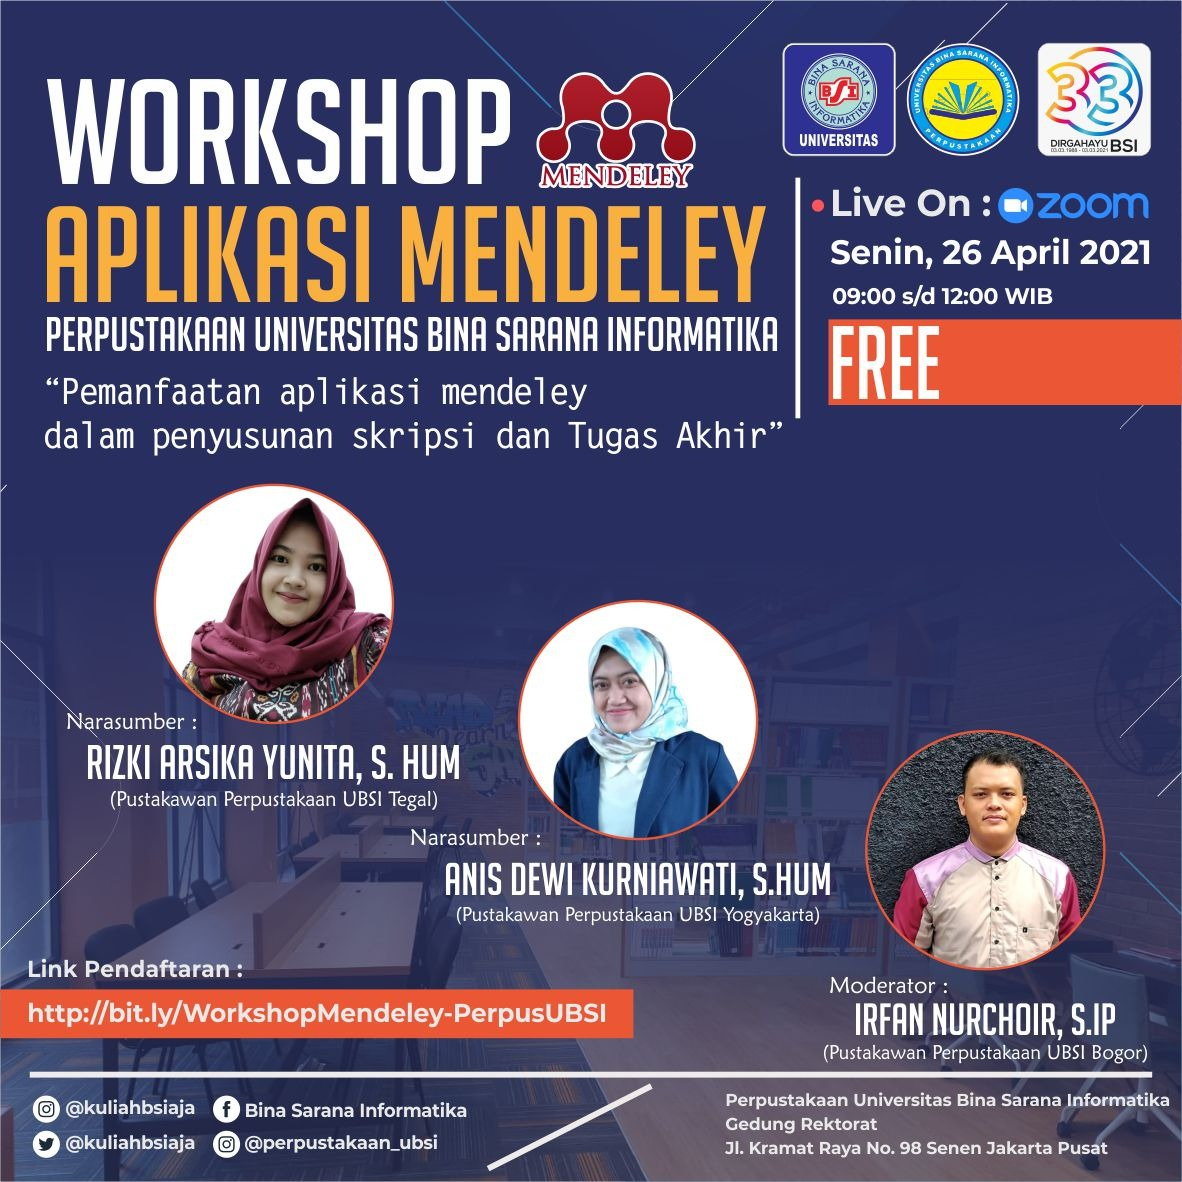 WORKSHOP APLIKASI MENDELEY PERPUSTAKAAN UBSI